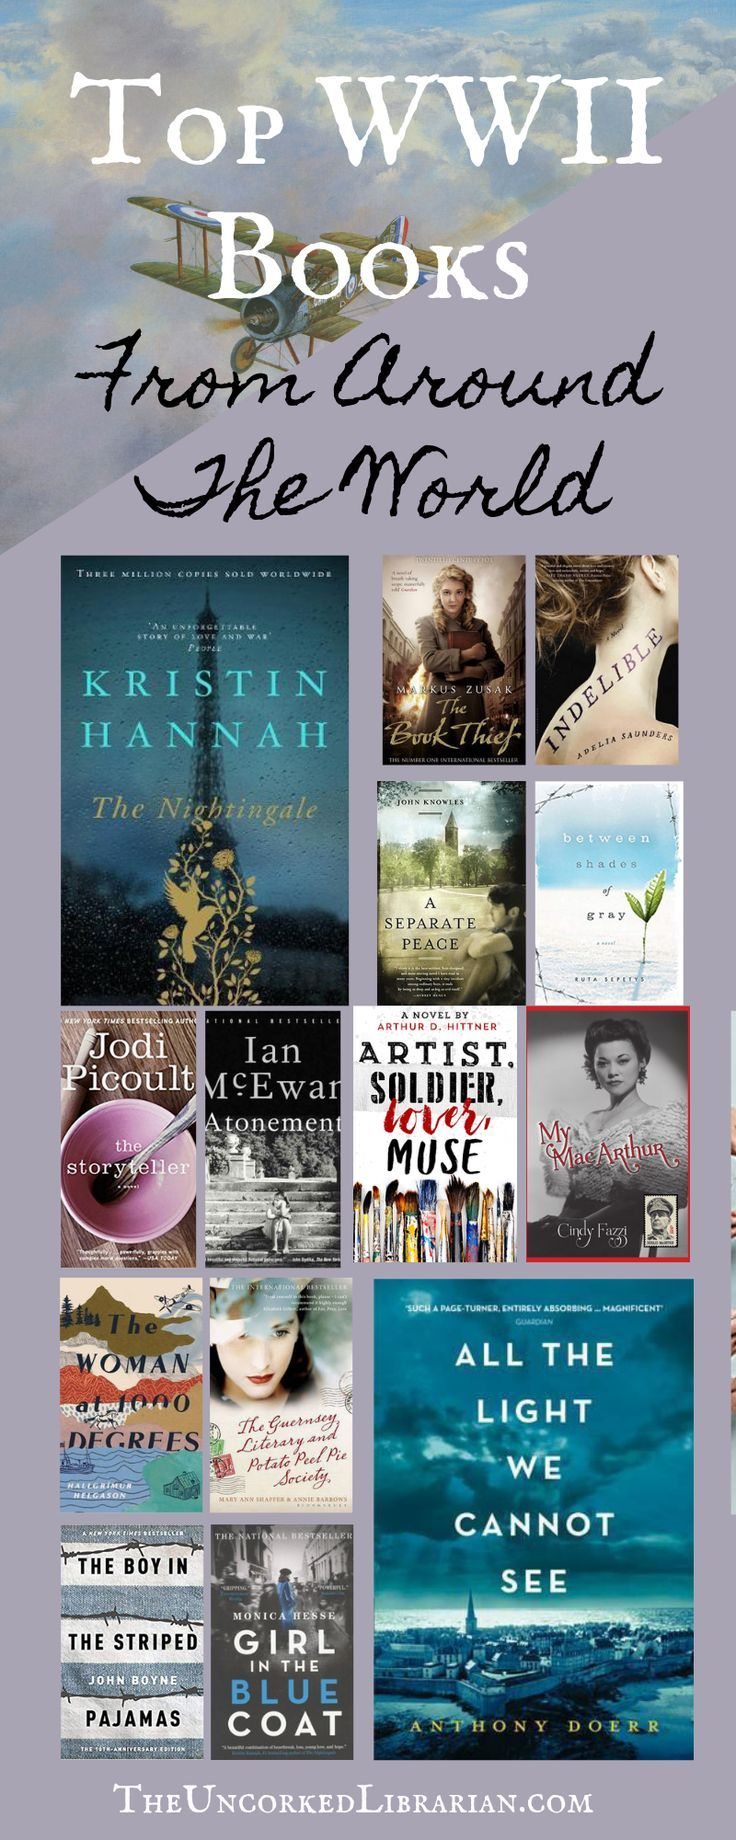 Do you love WWII novels? These are some of the best World War 2 books out recently. Check out this book list to find the top and most unique World War II historical fiction. Best selling and indie authors included. WWII Historical Fiction, WWII Books from around the World, New WWII Fiction, and World War II Novels. #historicalfiction #bookstoread #WWII